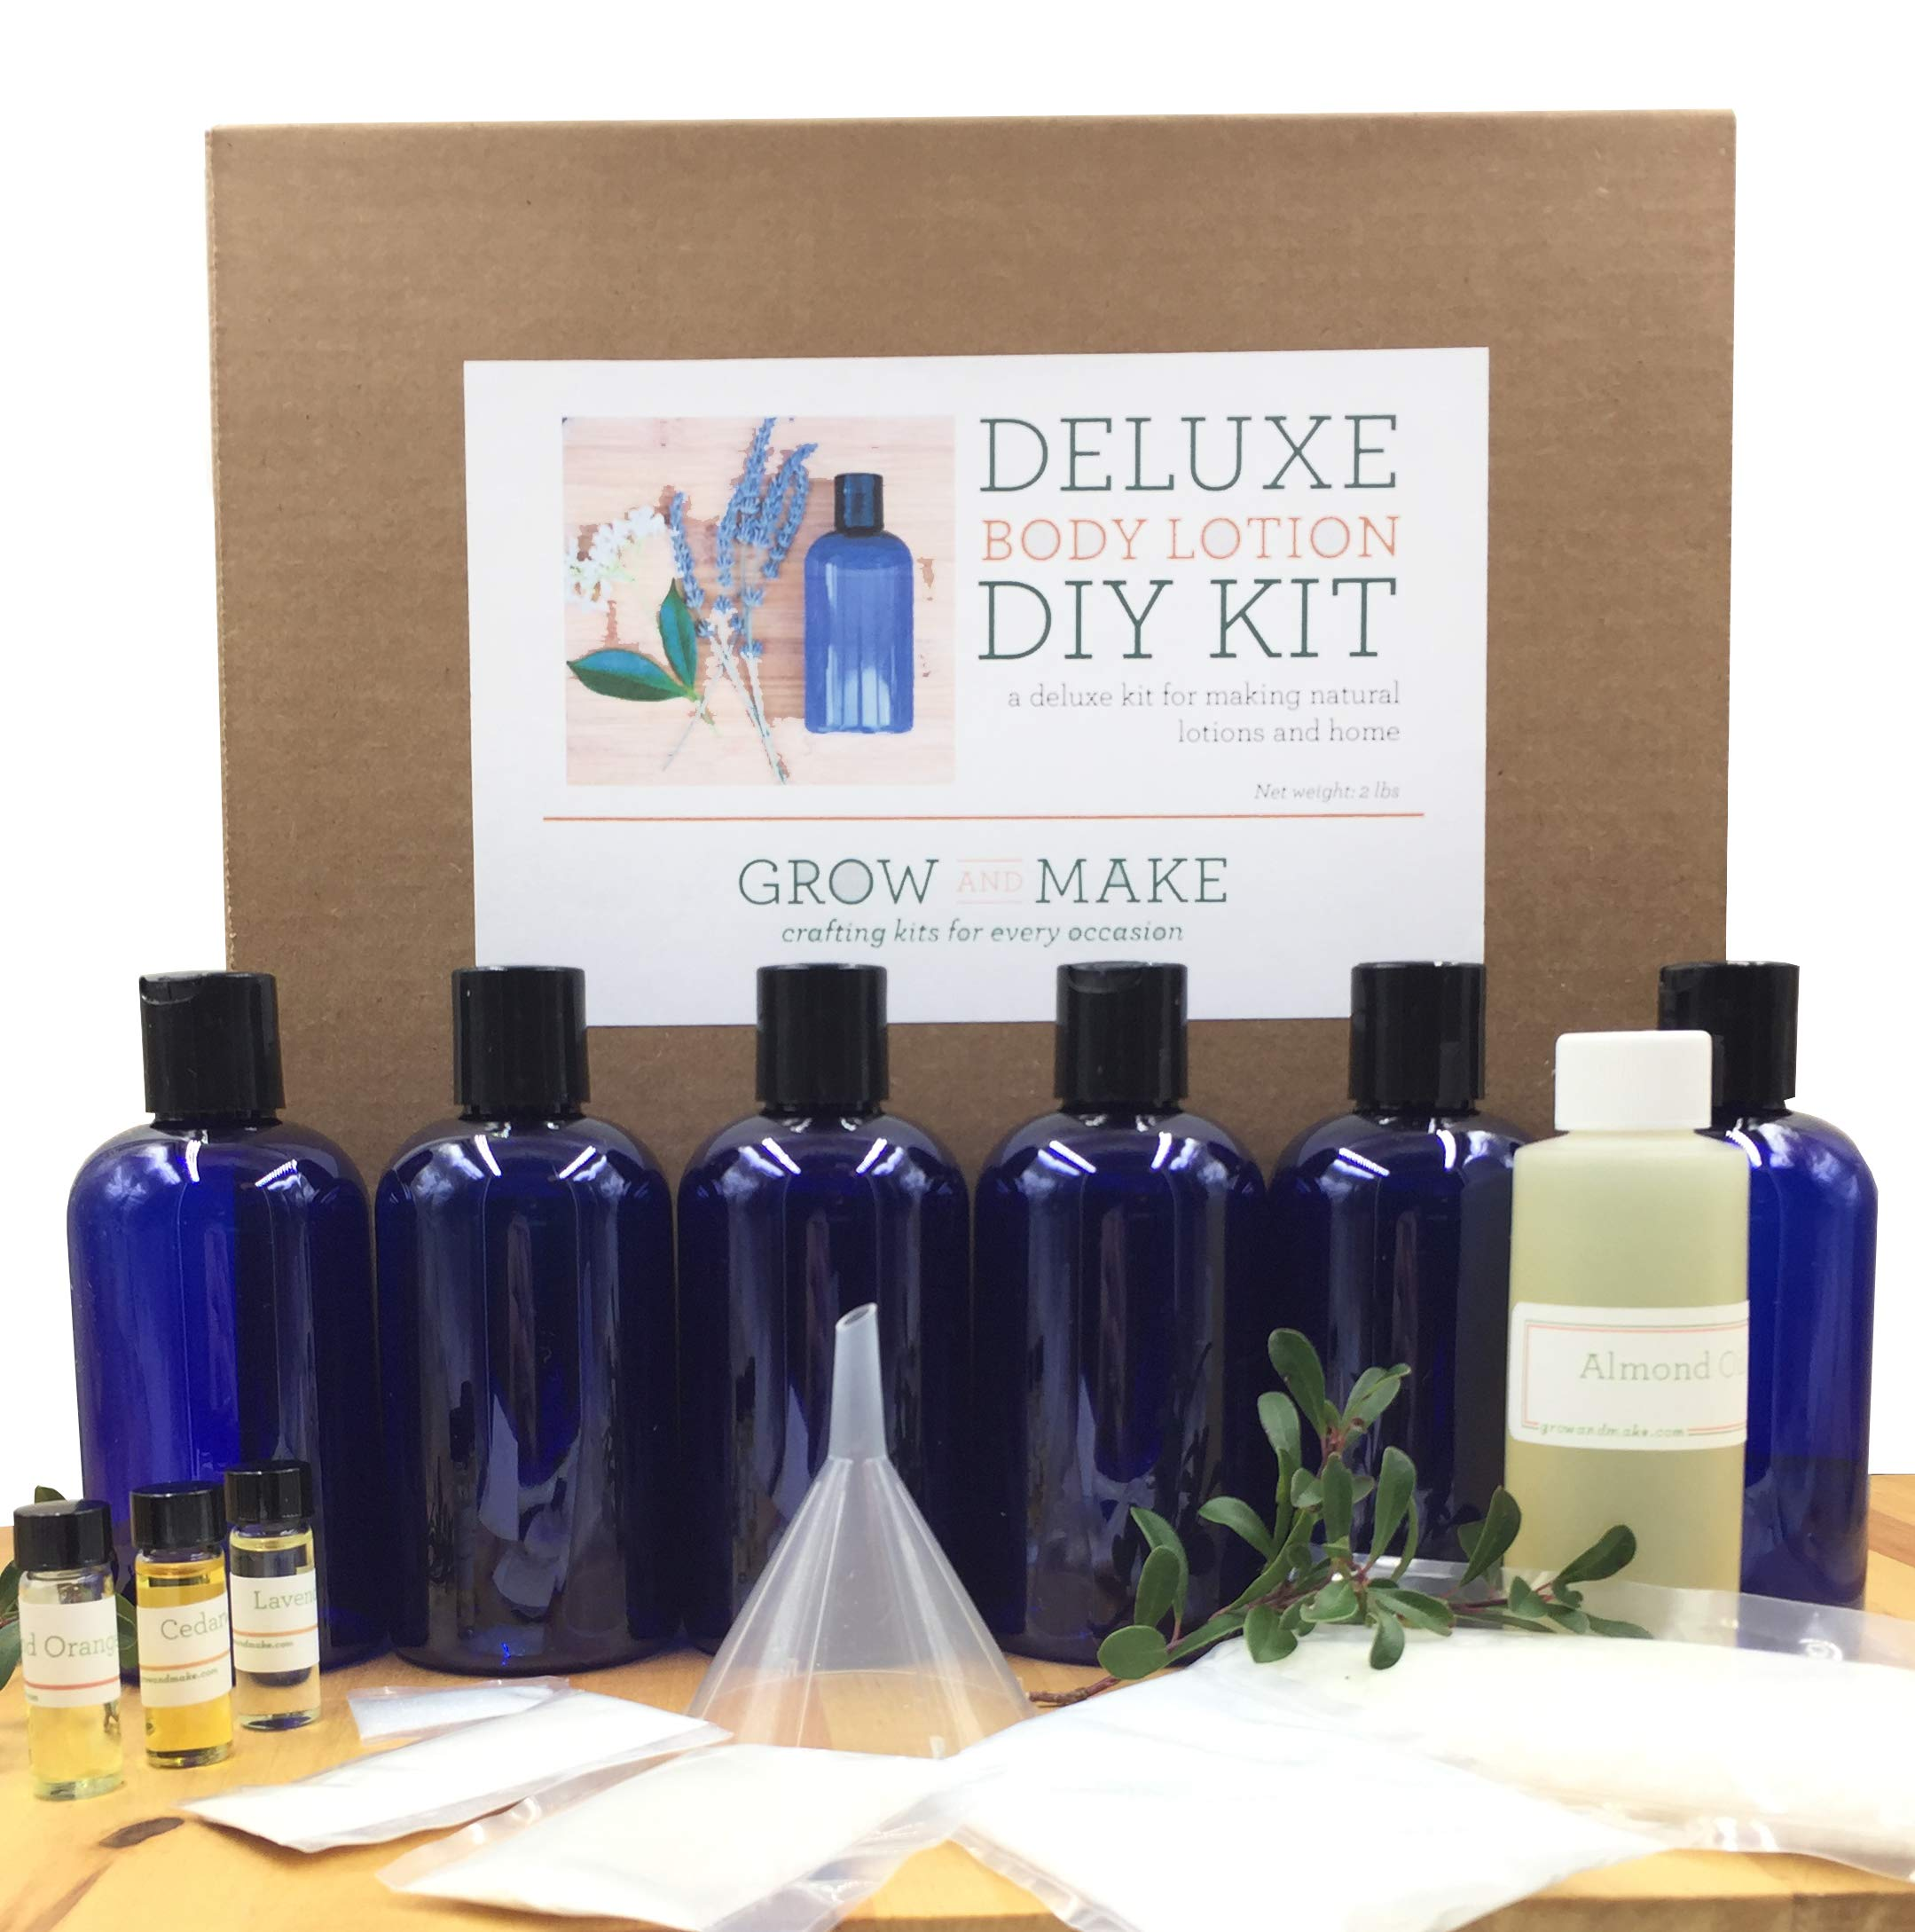 Grow and Make DIY Deluxe Body Lotion Making Kit - Learn how to make your own body lotion at home!